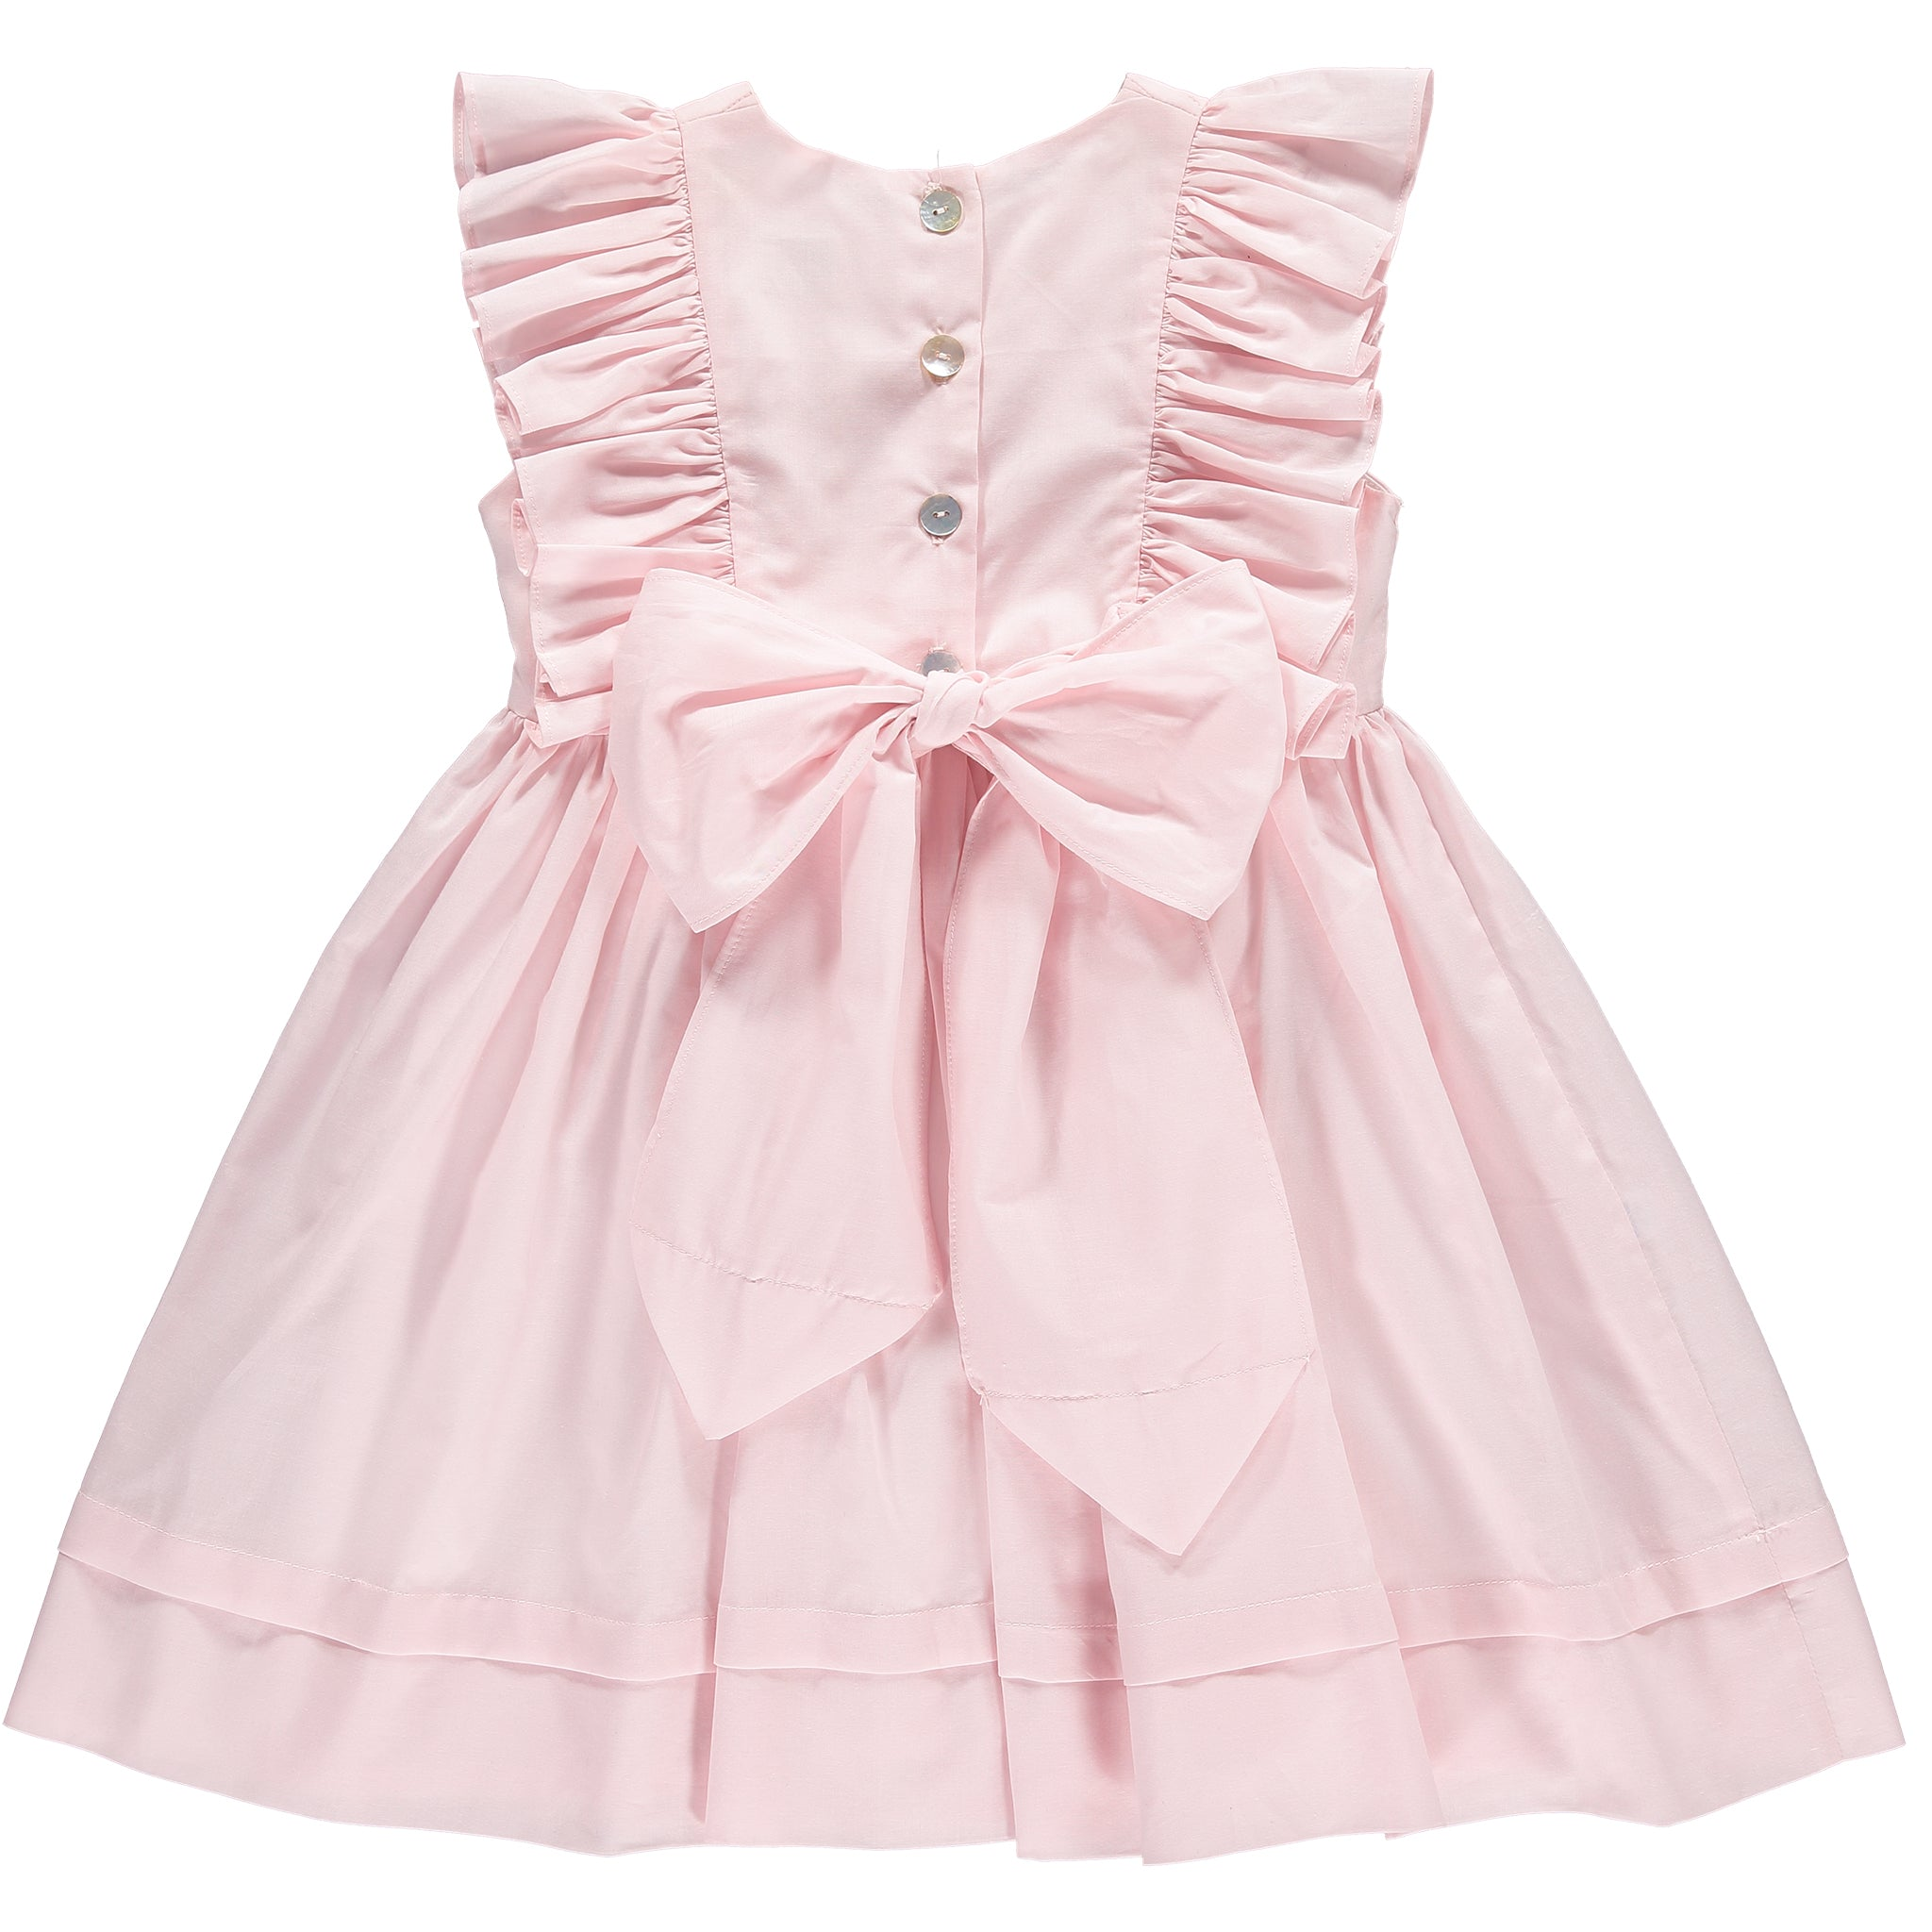 Light Pink Dress - size 10y